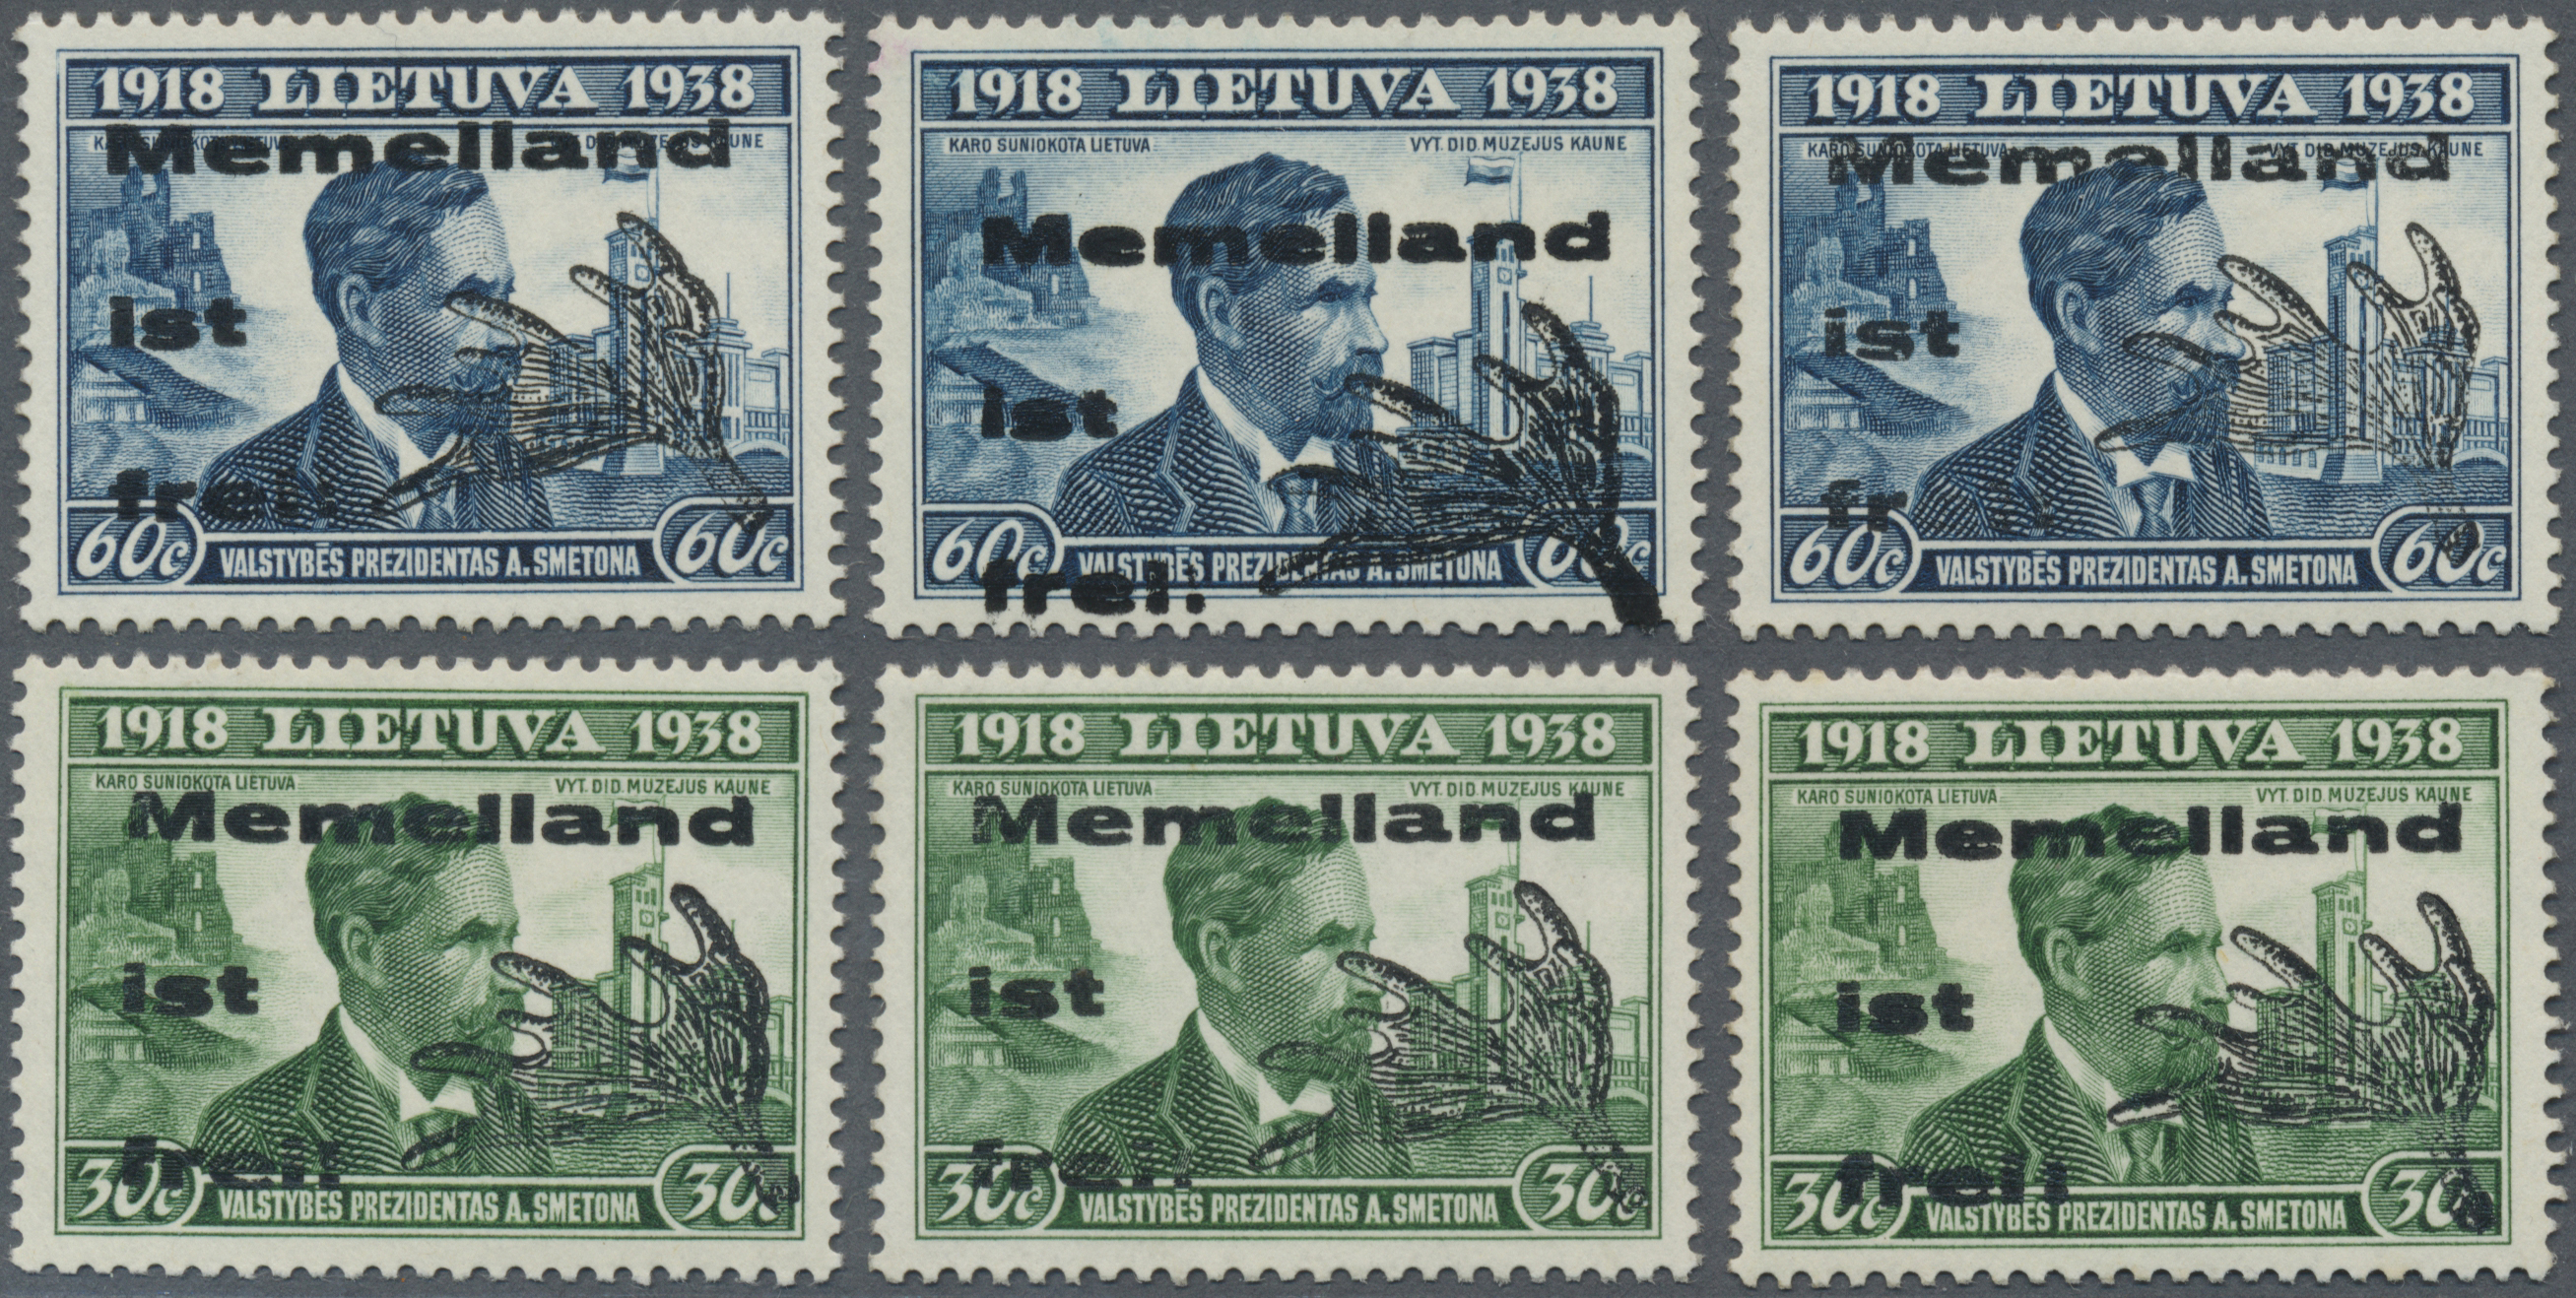 Lot 19177 - Memel - Lokalausgabe Memelland  -  Auktionshaus Christoph Gärtner GmbH & Co. KG Auction #40 Germany, Picture Post Cards, Collections Overseas, Thematics